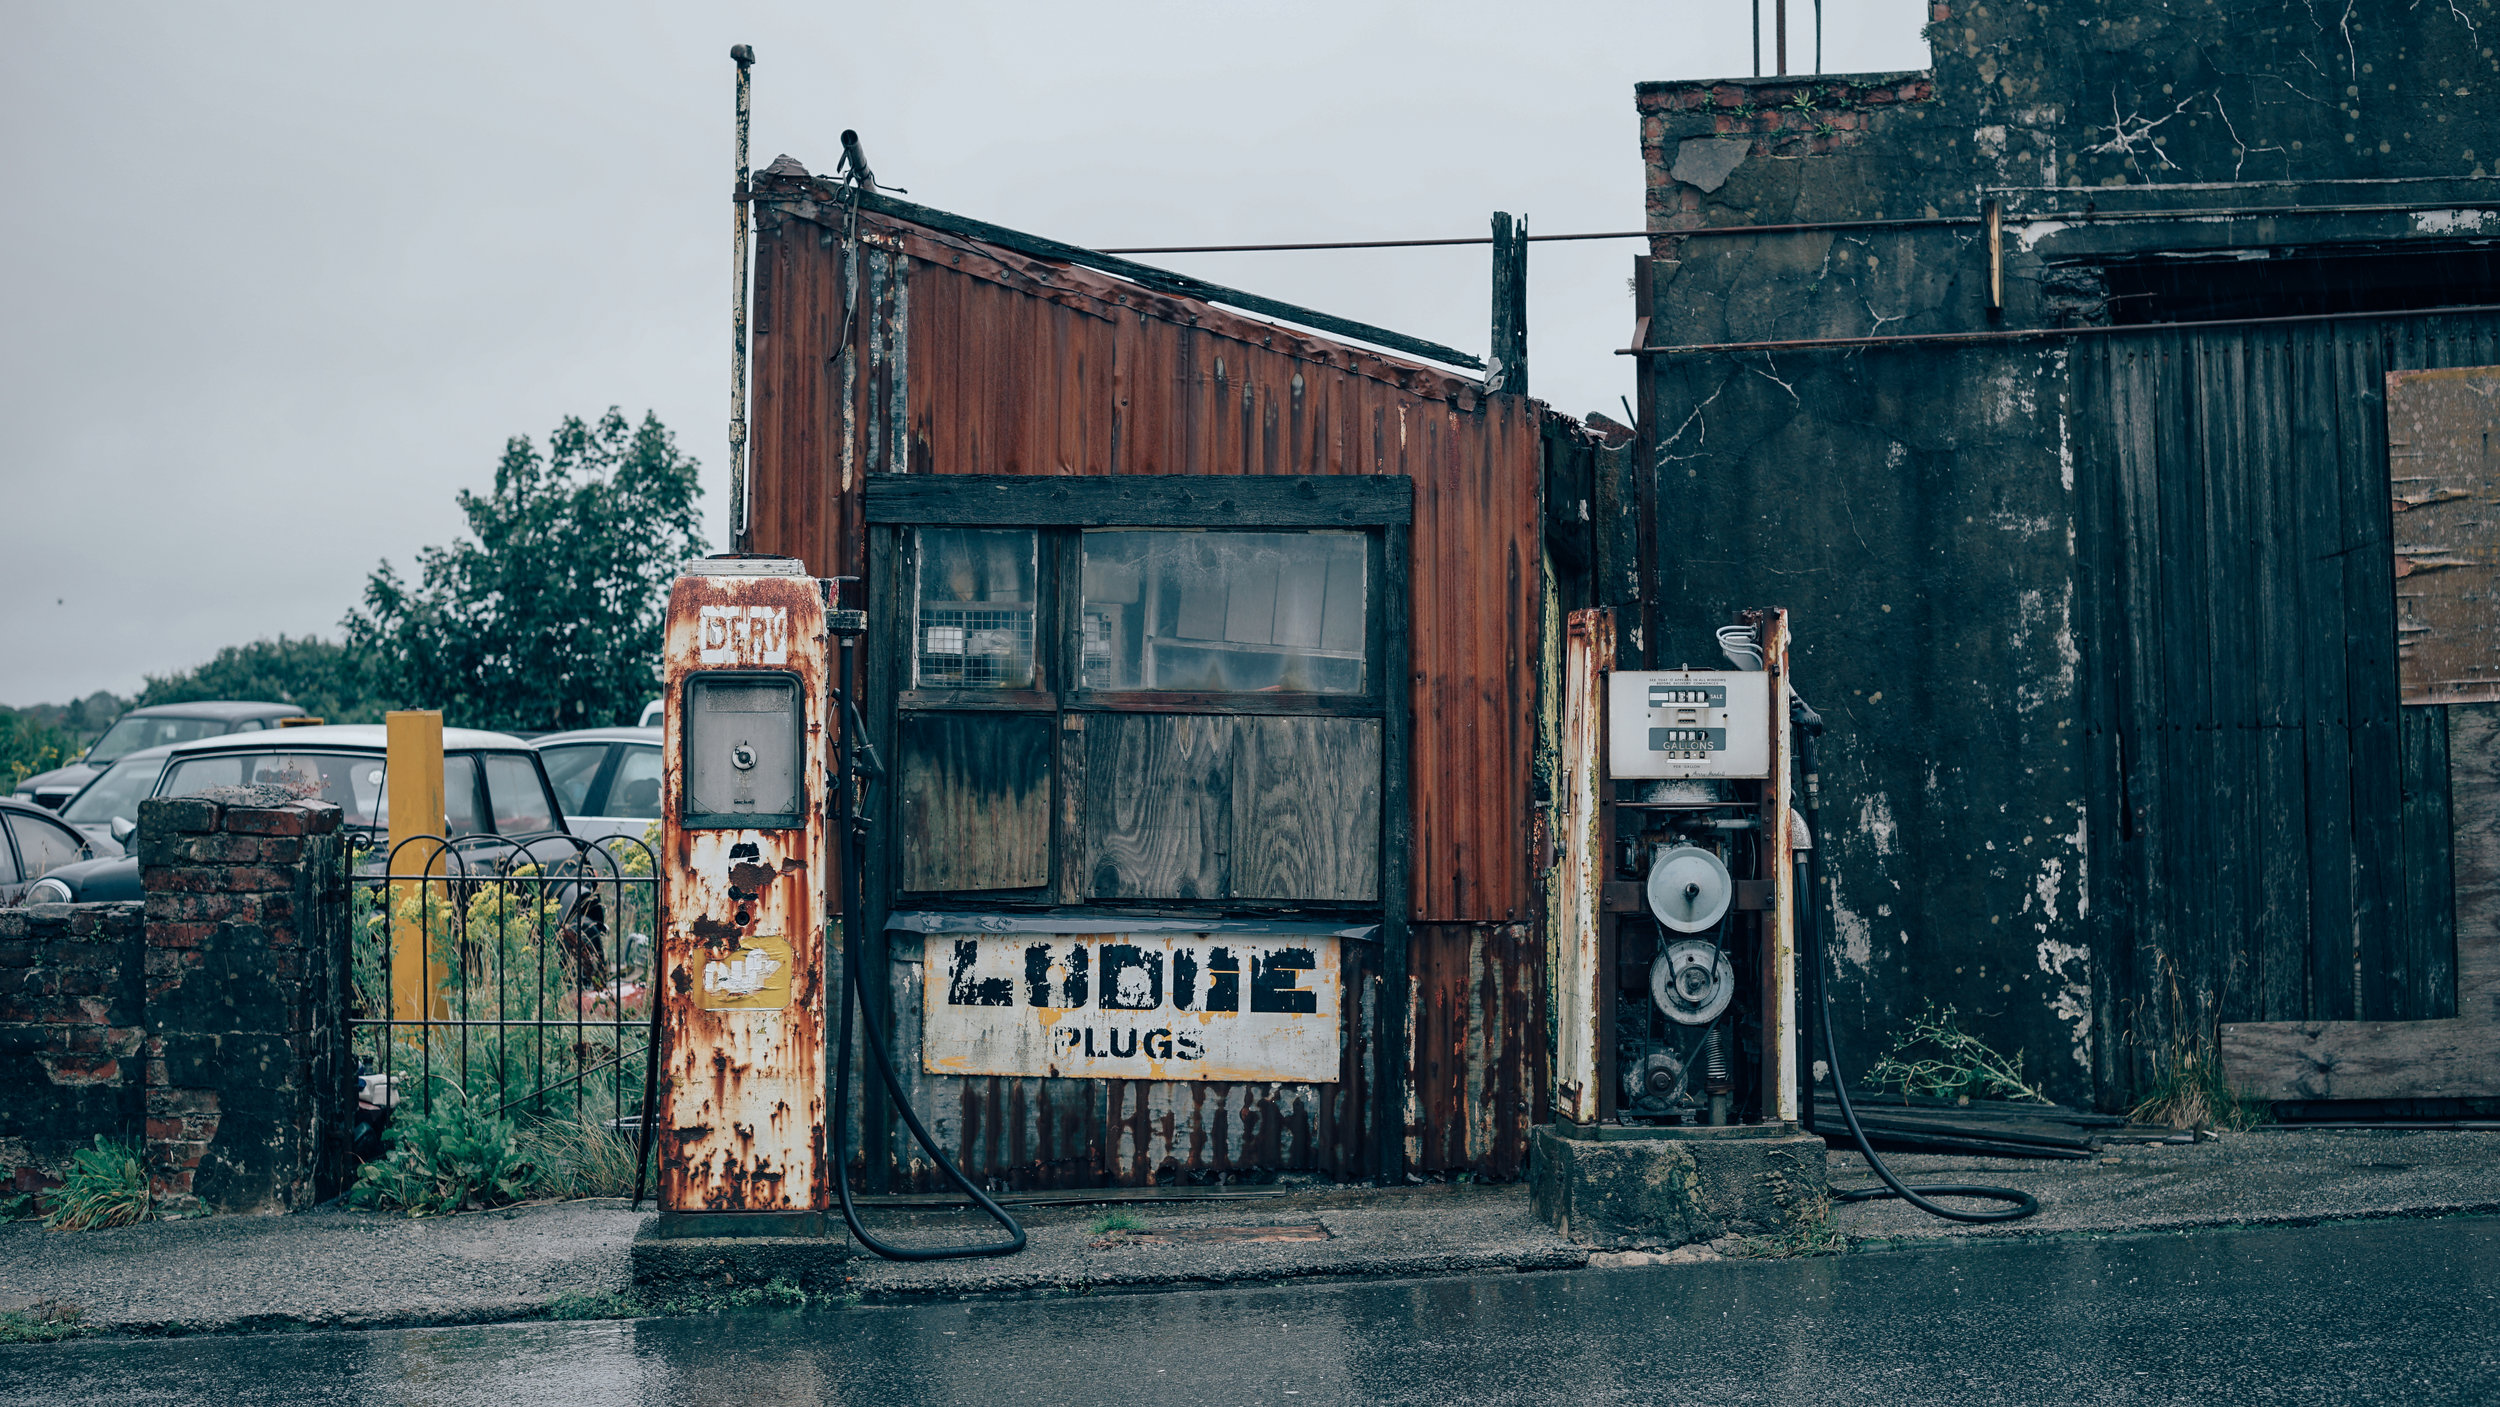 Rural Filling Station | Zeiss Lenspire